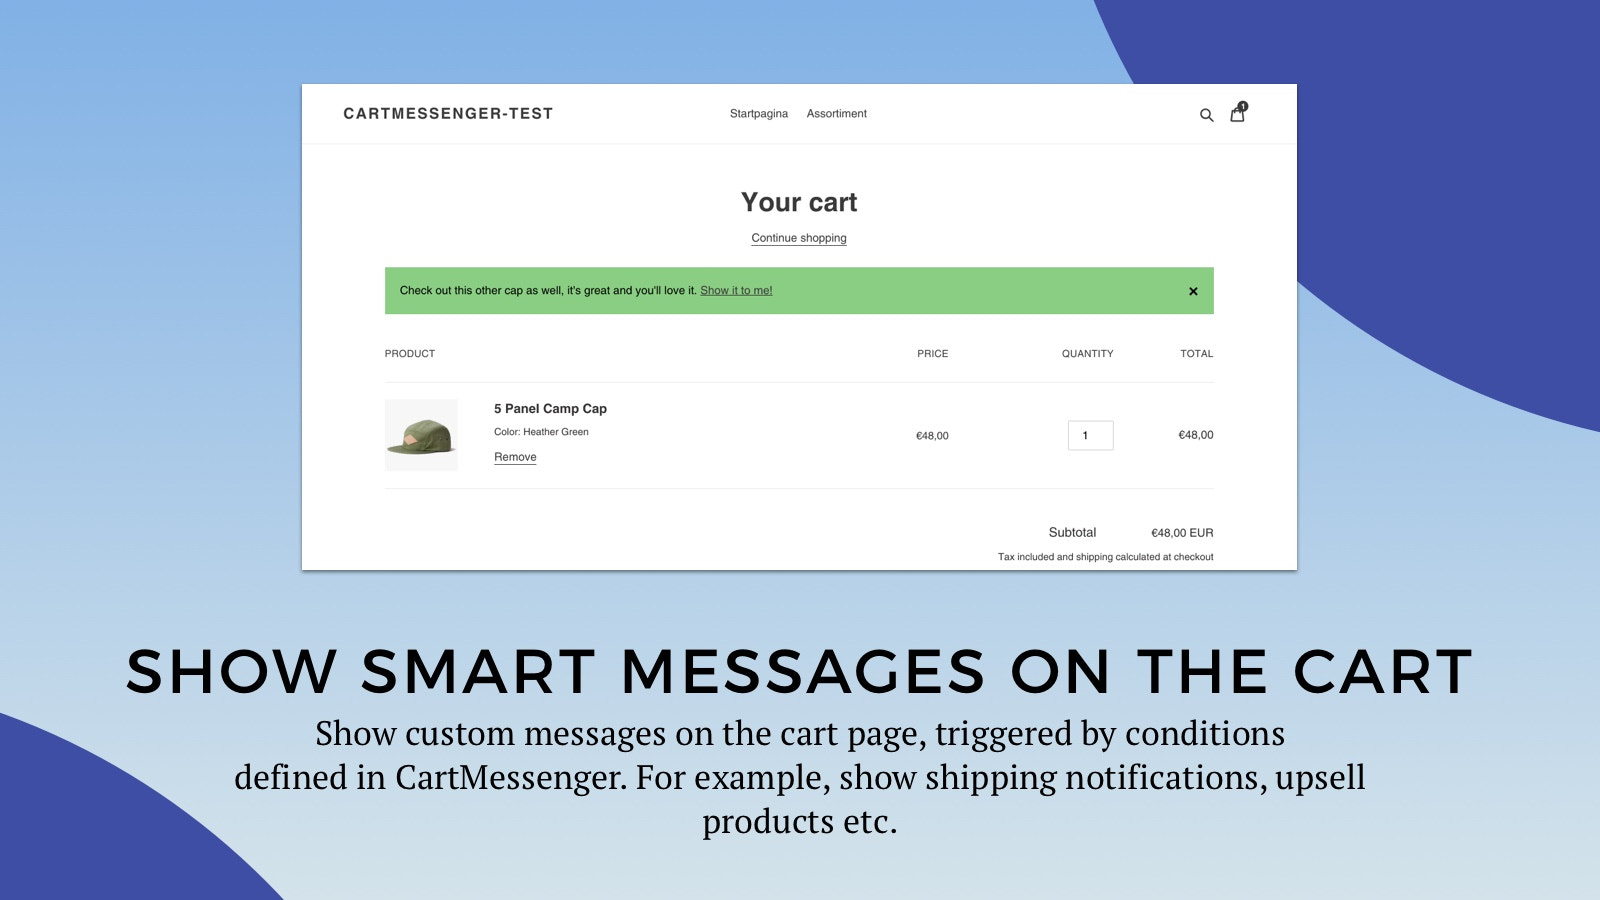 Show smart messages on the cart